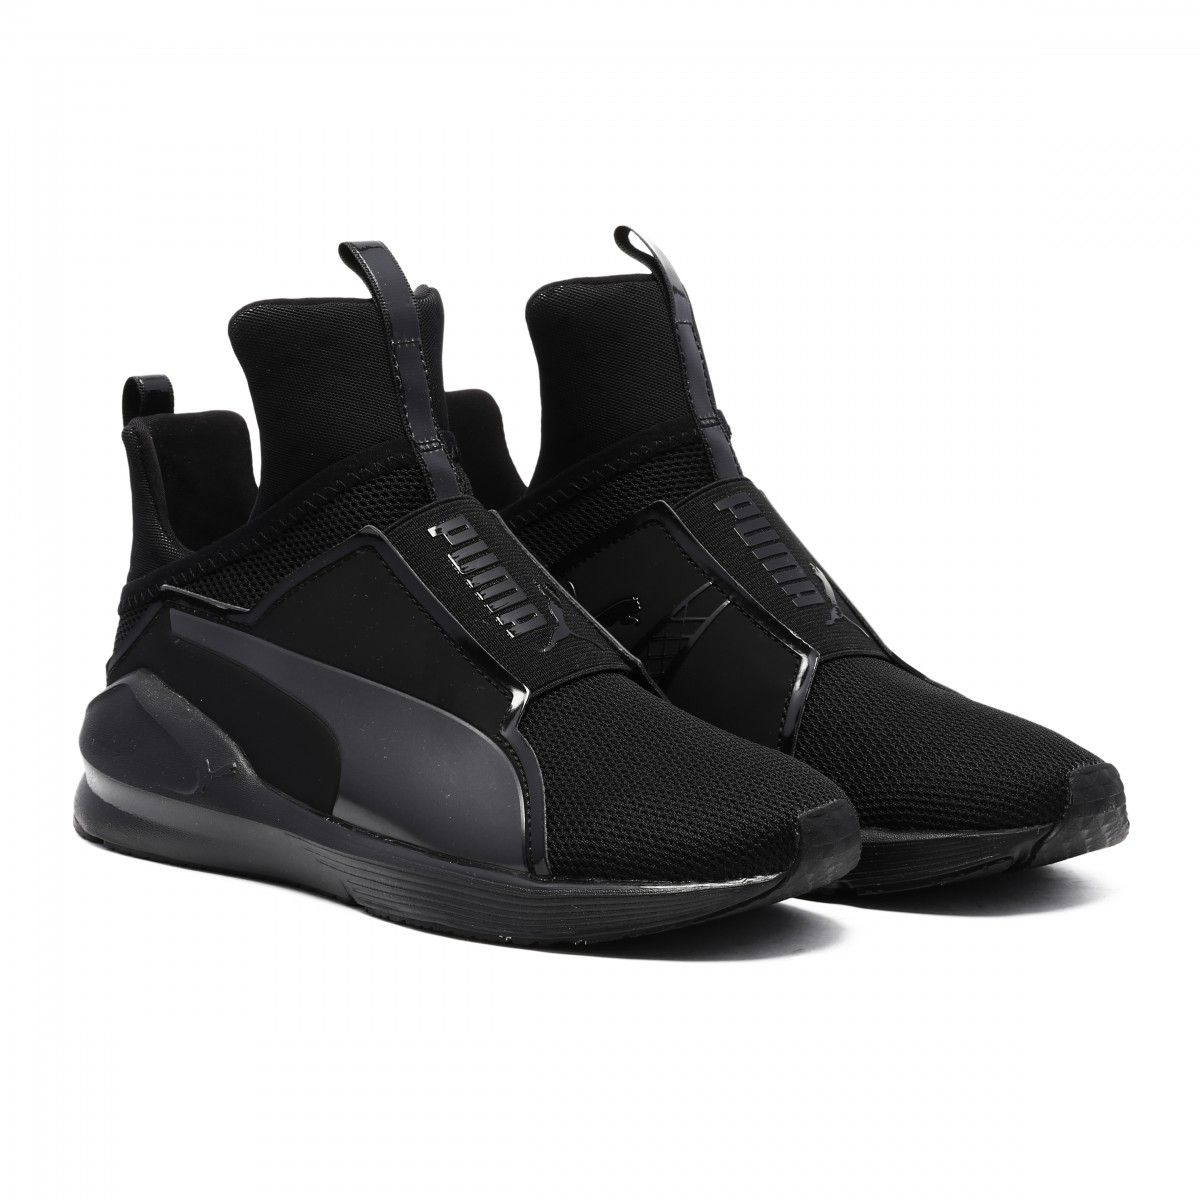 Black Puma Fierce Y ShoesRopa Deportivos Zapatos 3R45LAj